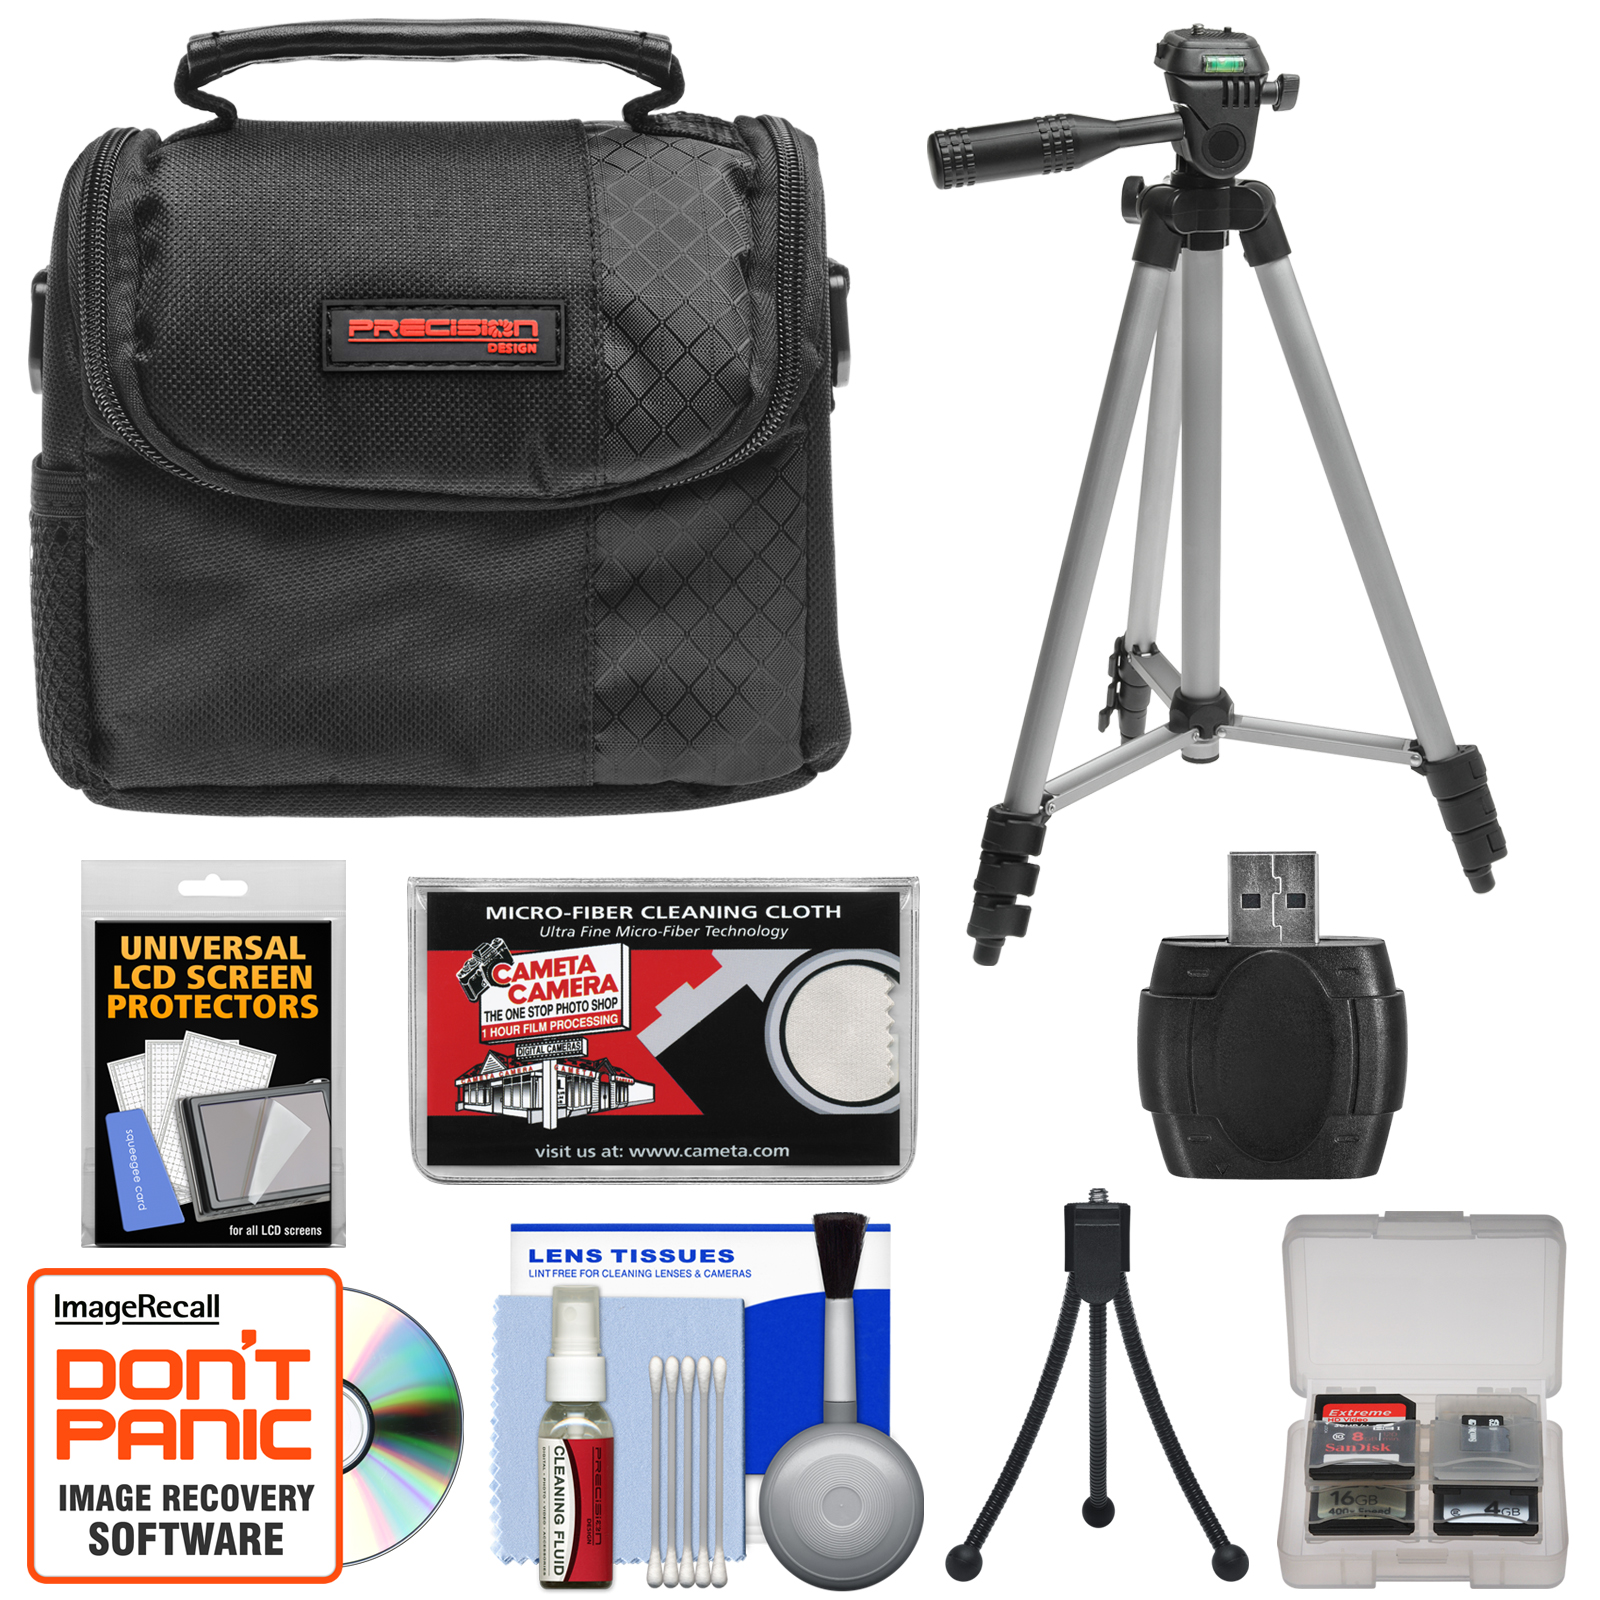 Accessory Kit for Select Nikon Coolpix Digital Cameras with Digital Camera Case, Compact Travel Tripod, and High-Speed USB 2.0 SecureDigital (SD) Card Reader